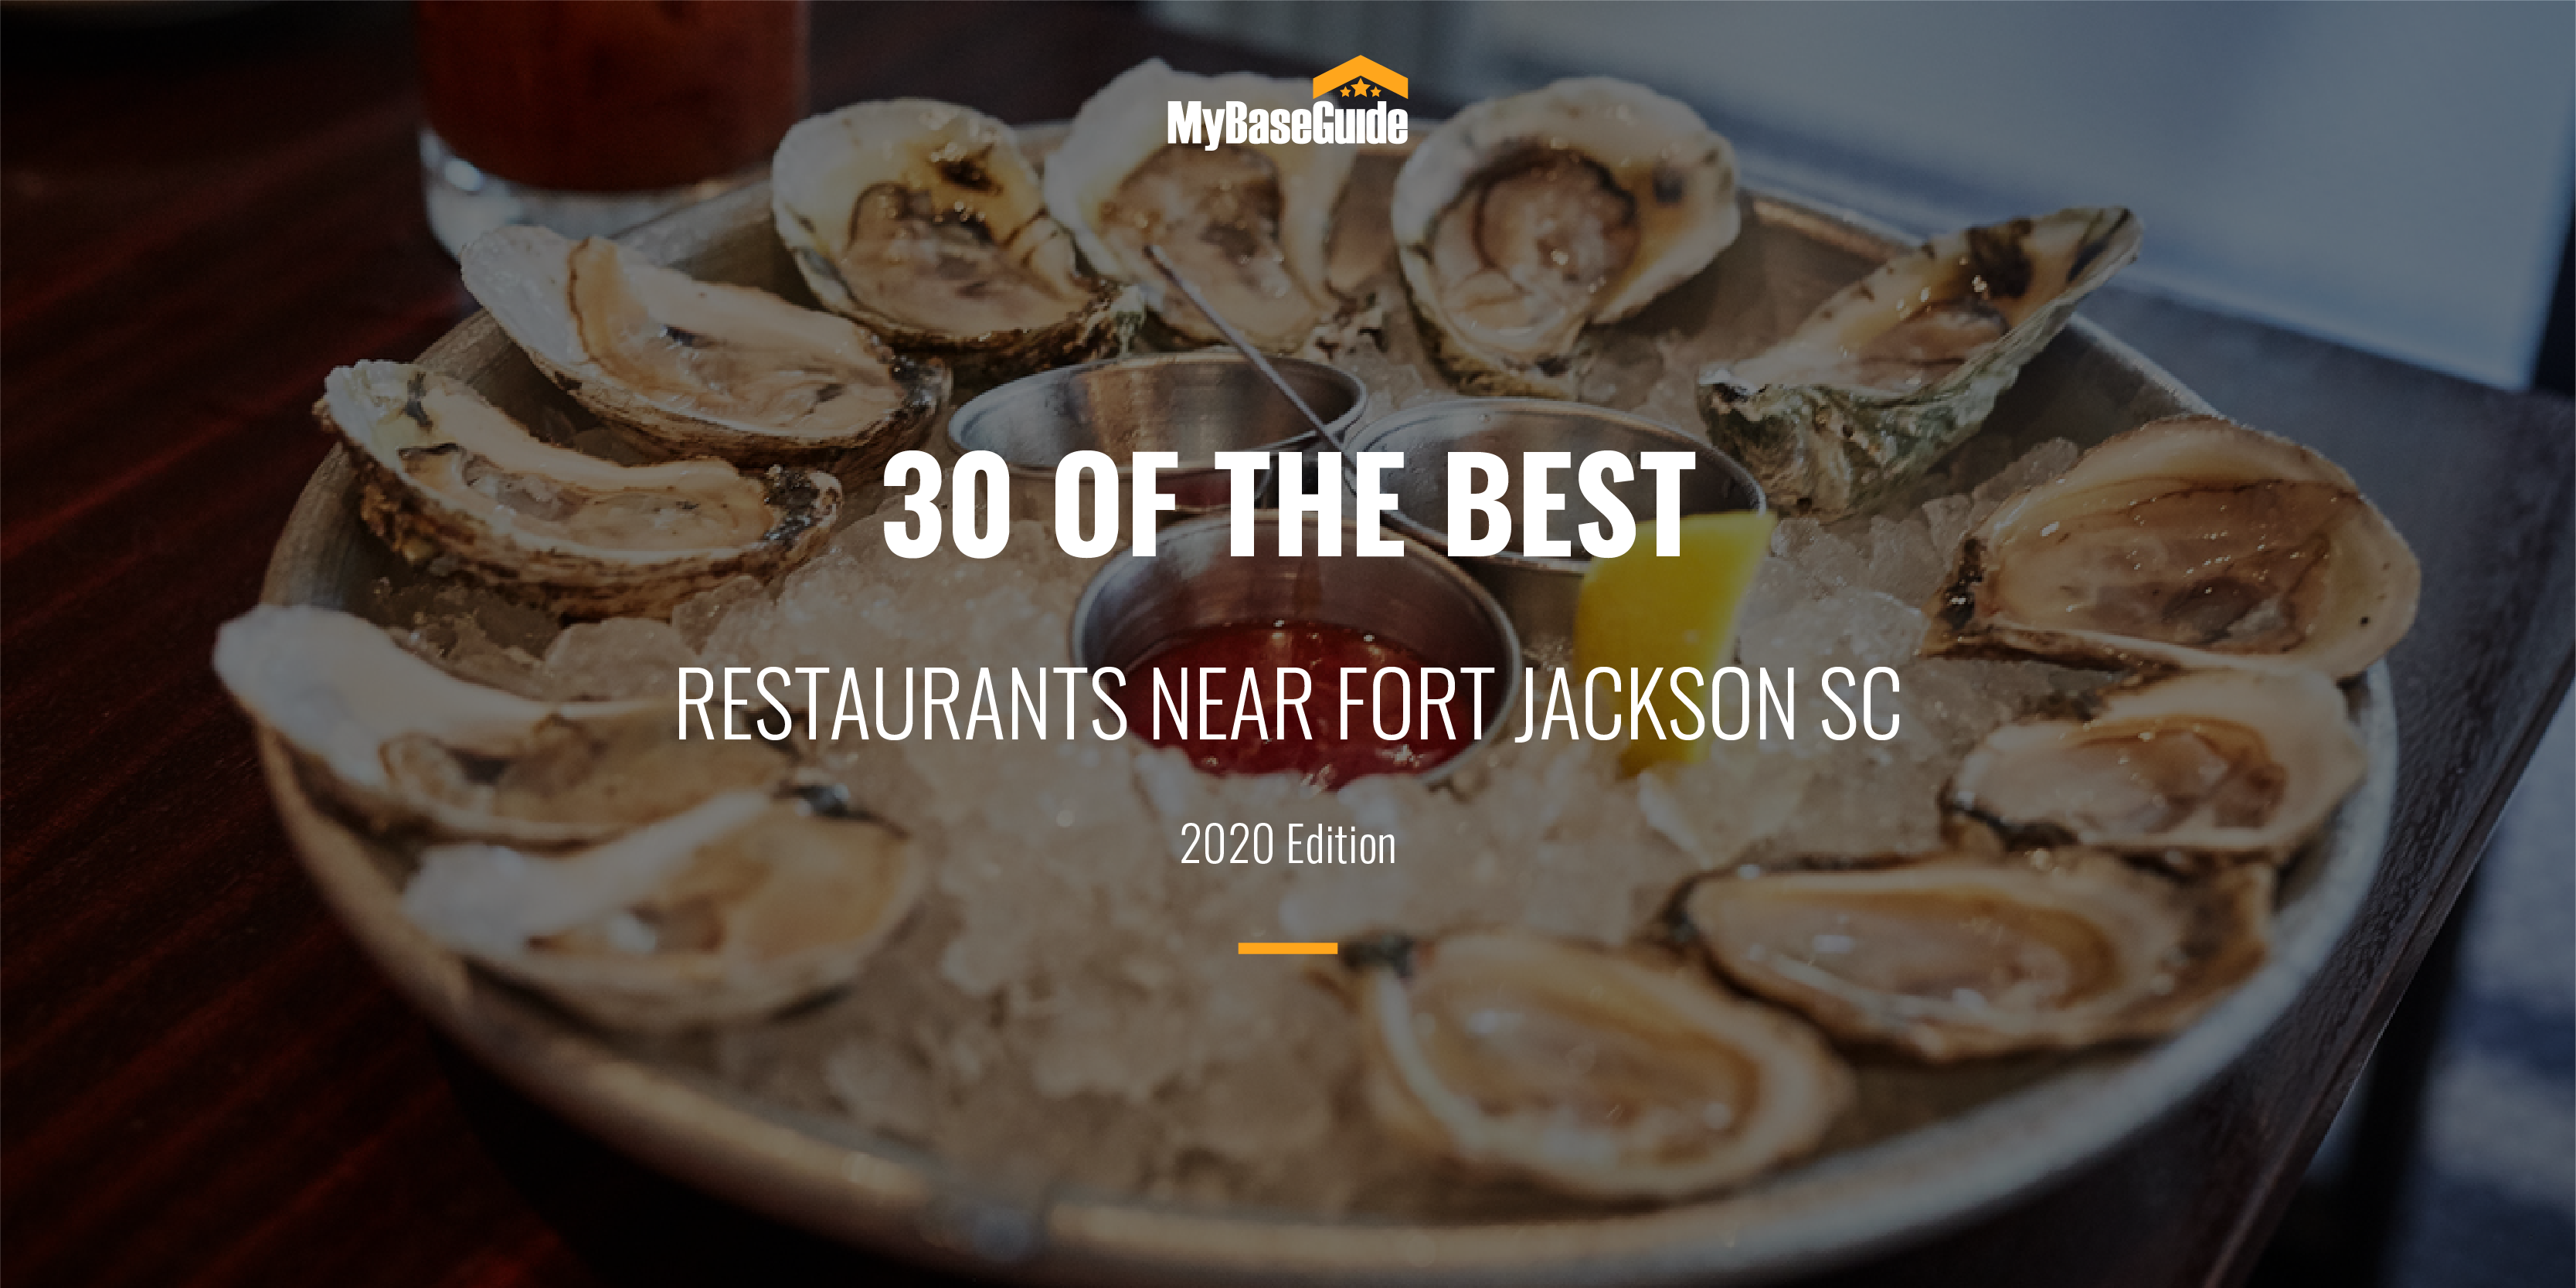 Restaurants Near Fort Jackson SC